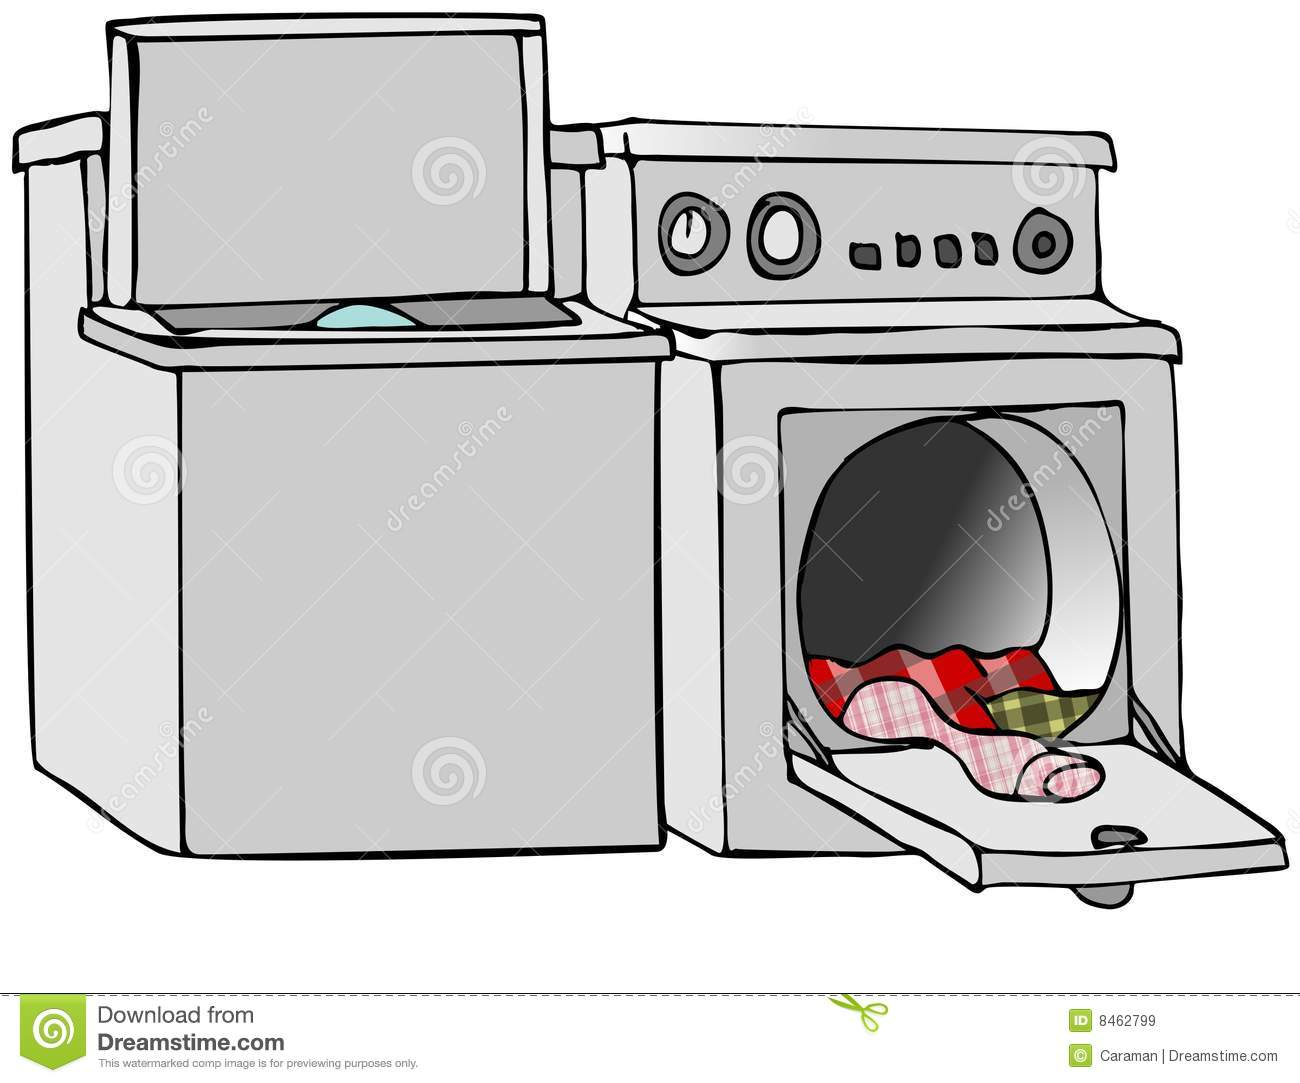 This Illustration Depicts A Washing Machine And Clothes Dryer With